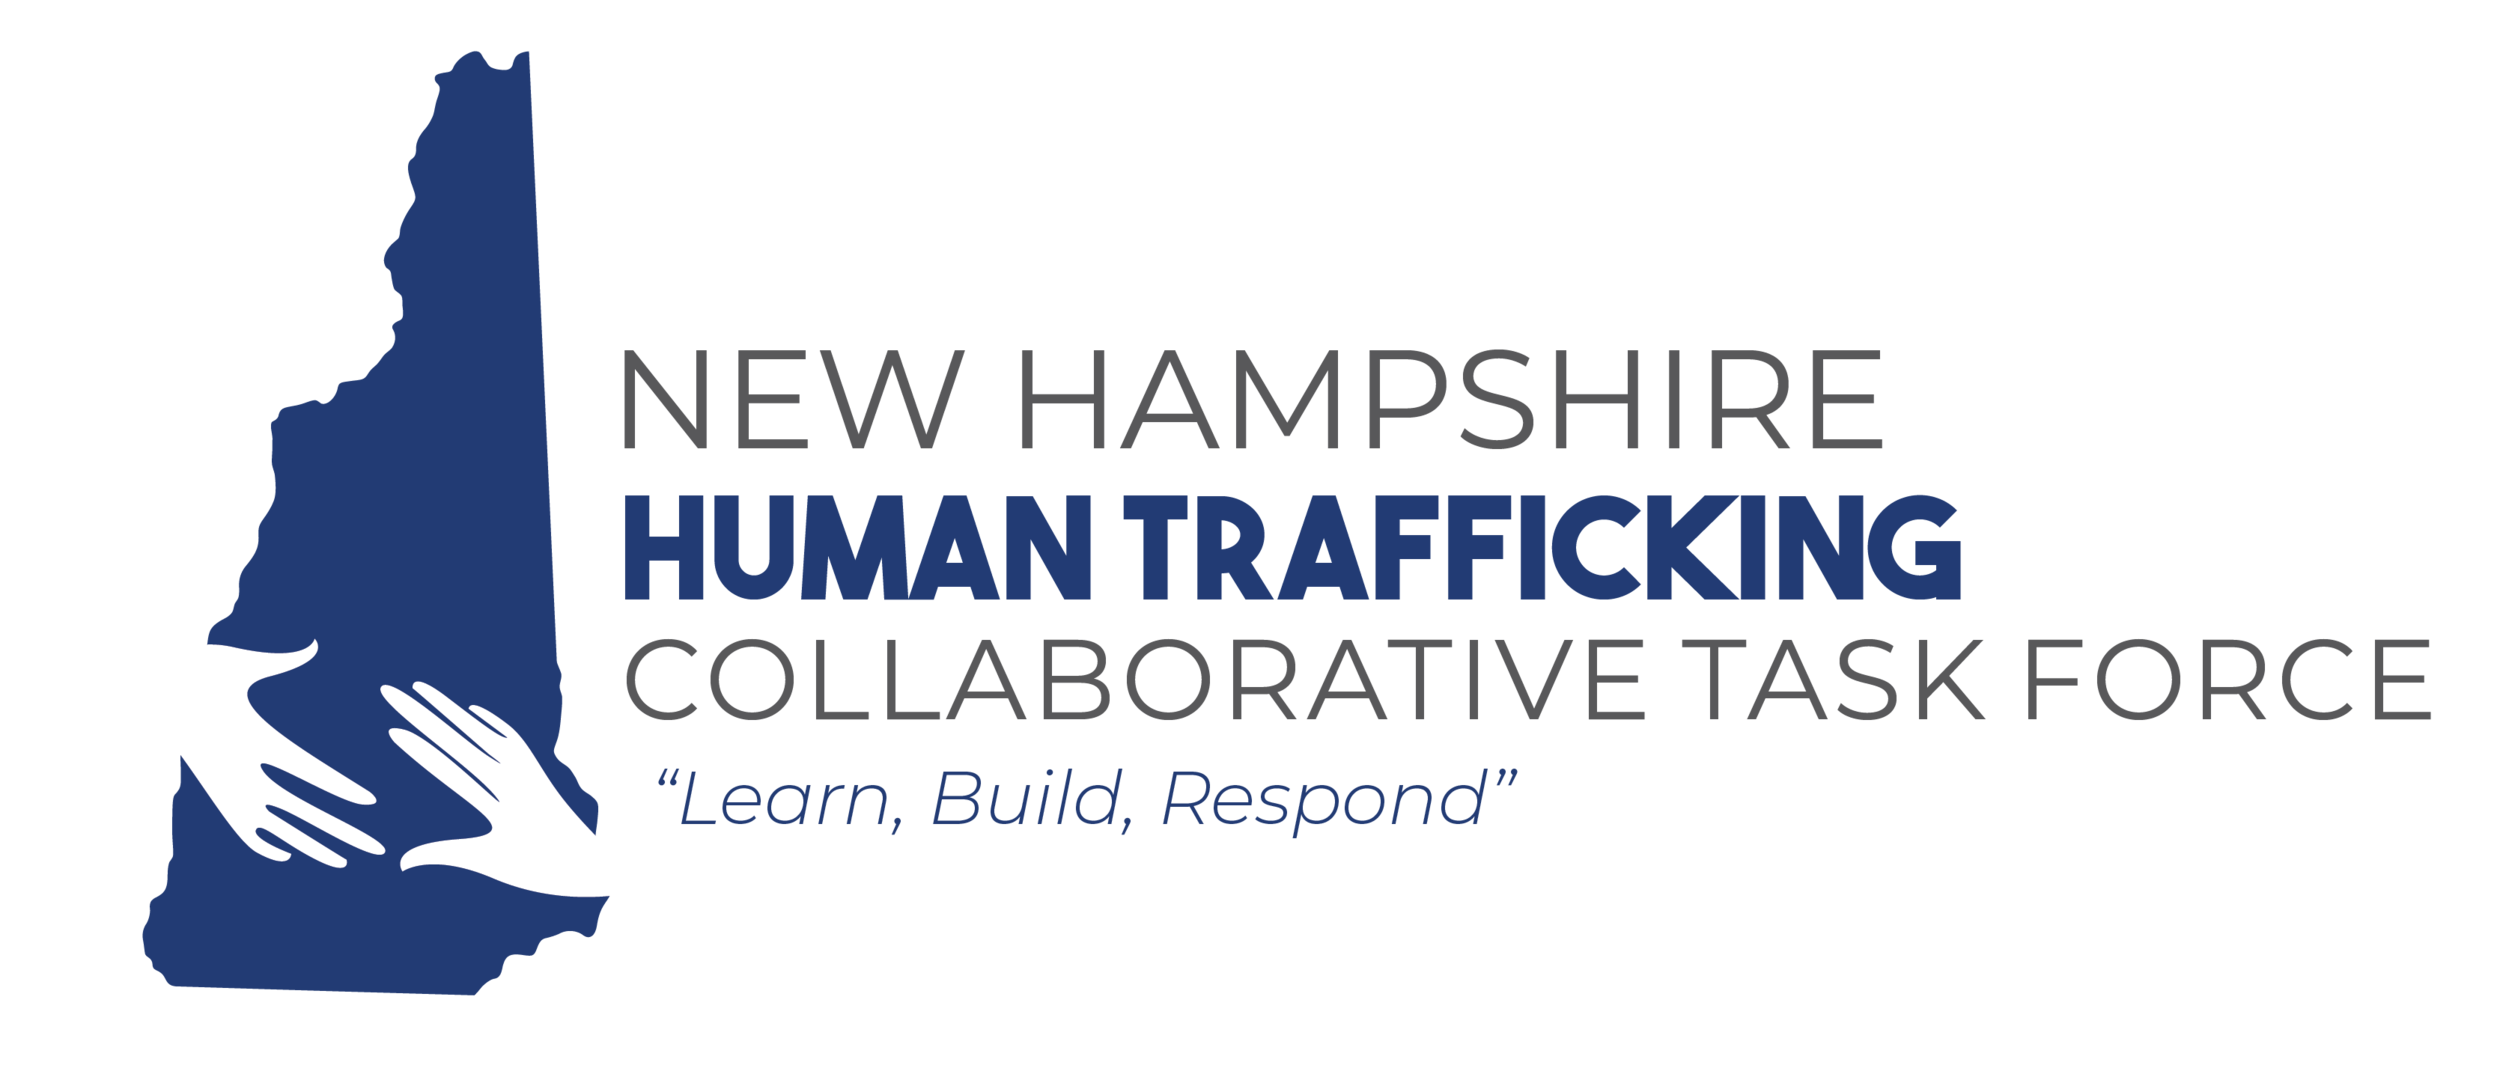 NH Human Trafficking Collaborative Task Force - Transparent-14.png